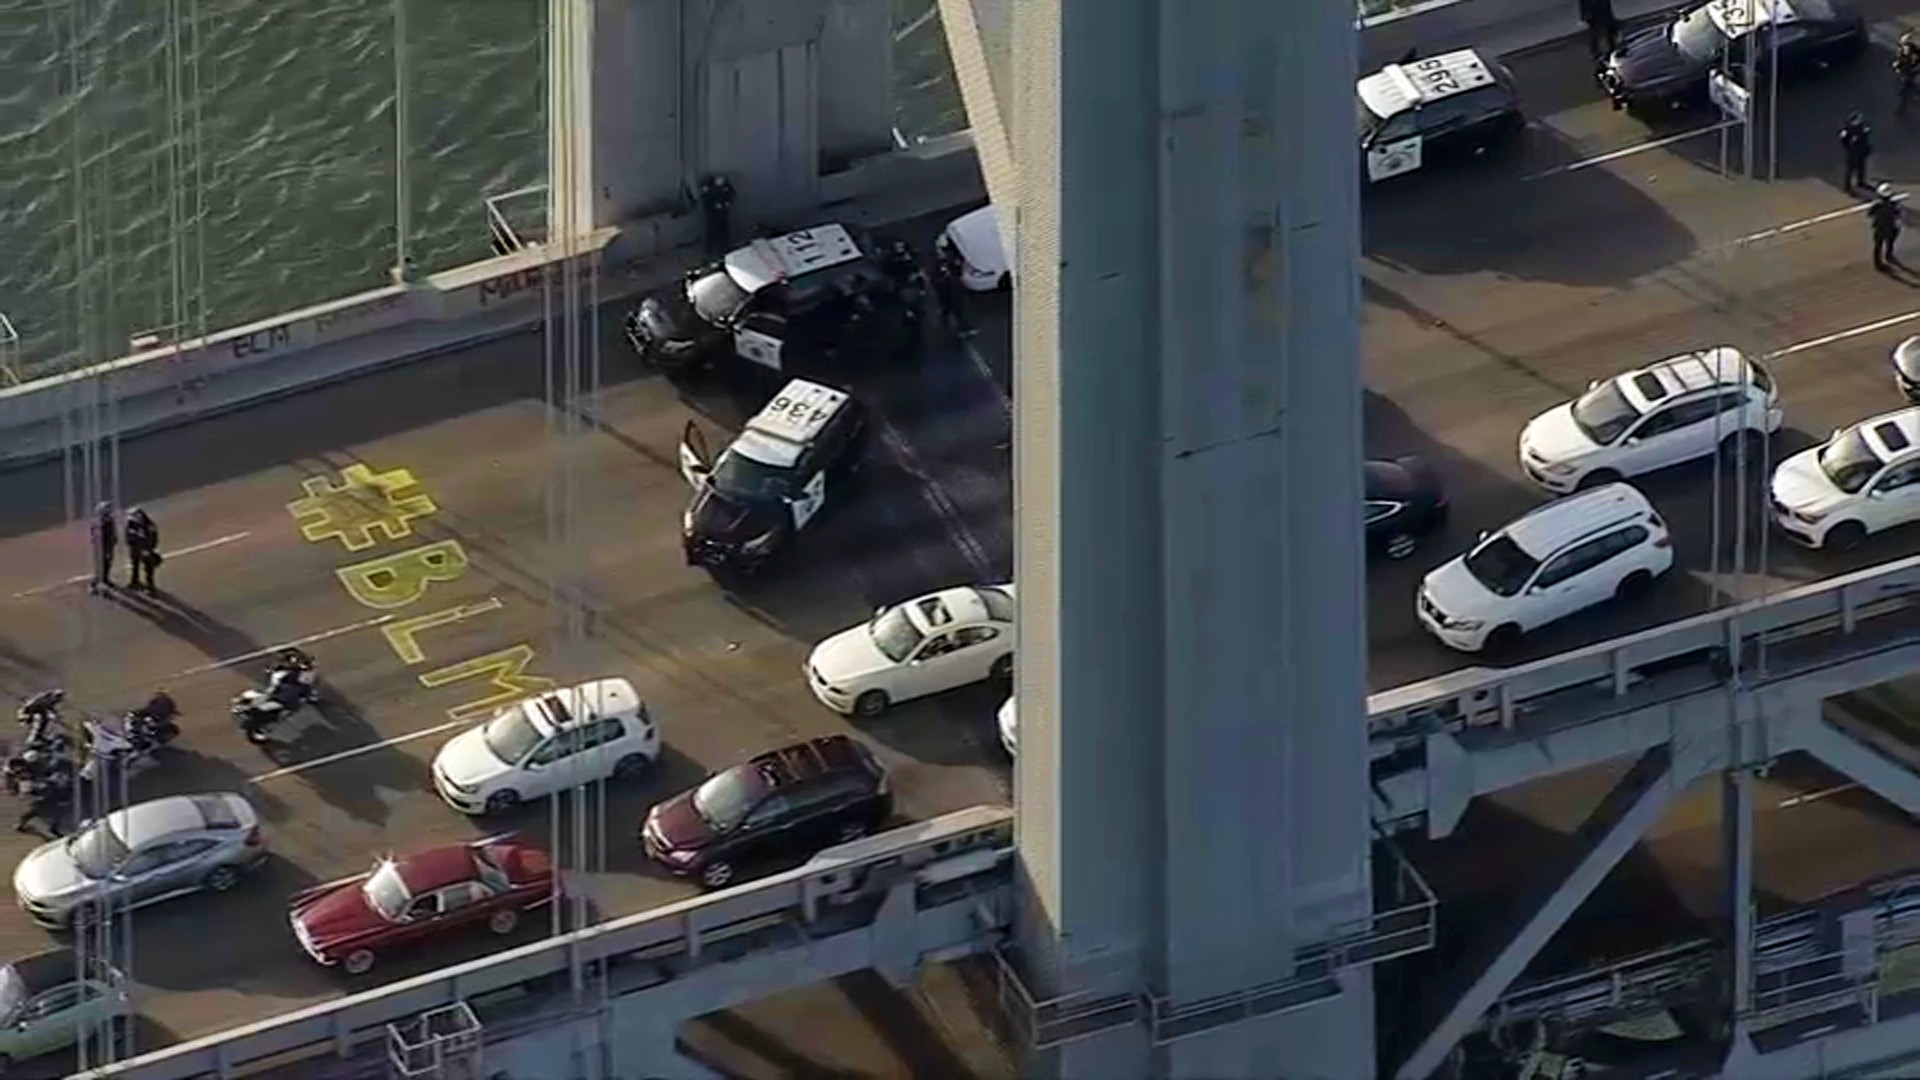 29 Arrested After Protesters Block Upper Deck Of Bay Bridge For Hours Nbc Bay Area